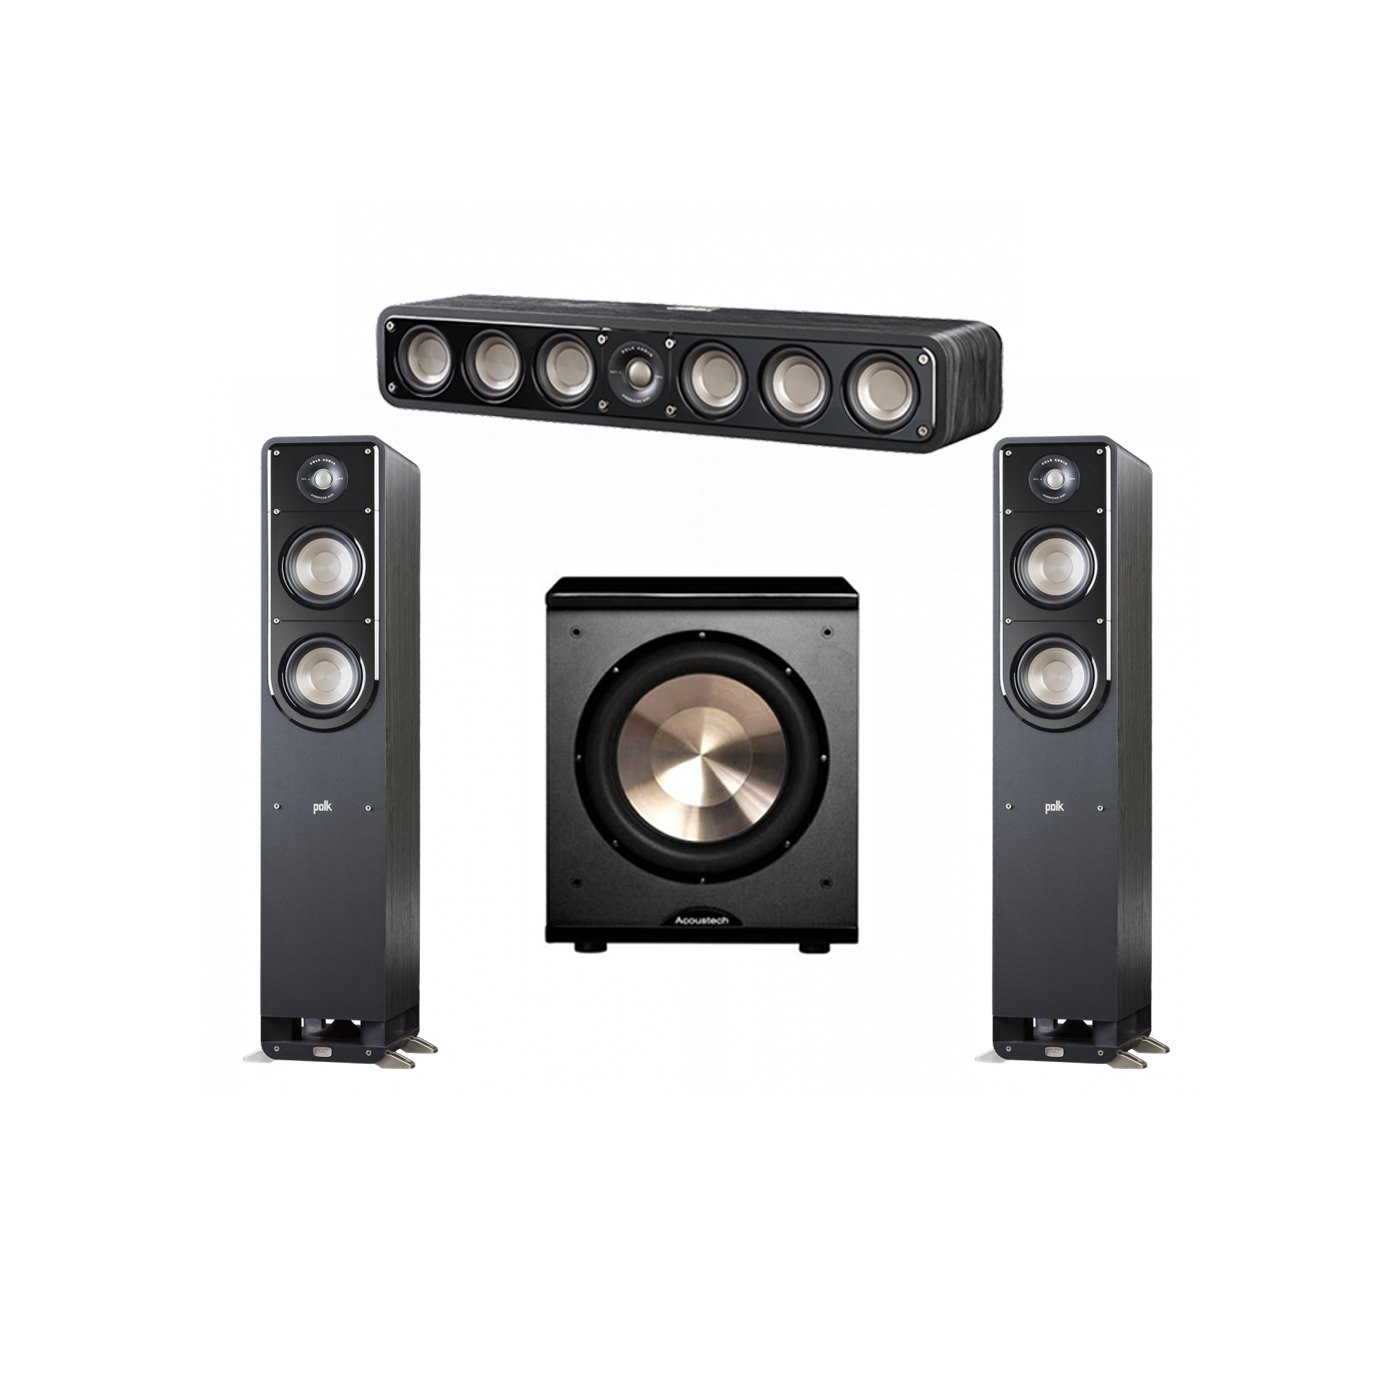 Polk Audio Signature 3.1 System with 2 S50 Tower Speaker, 1 Polk S35 Center Speaker, 1 BIC/Acoustech Platinum Series PL-200 Subwoofer